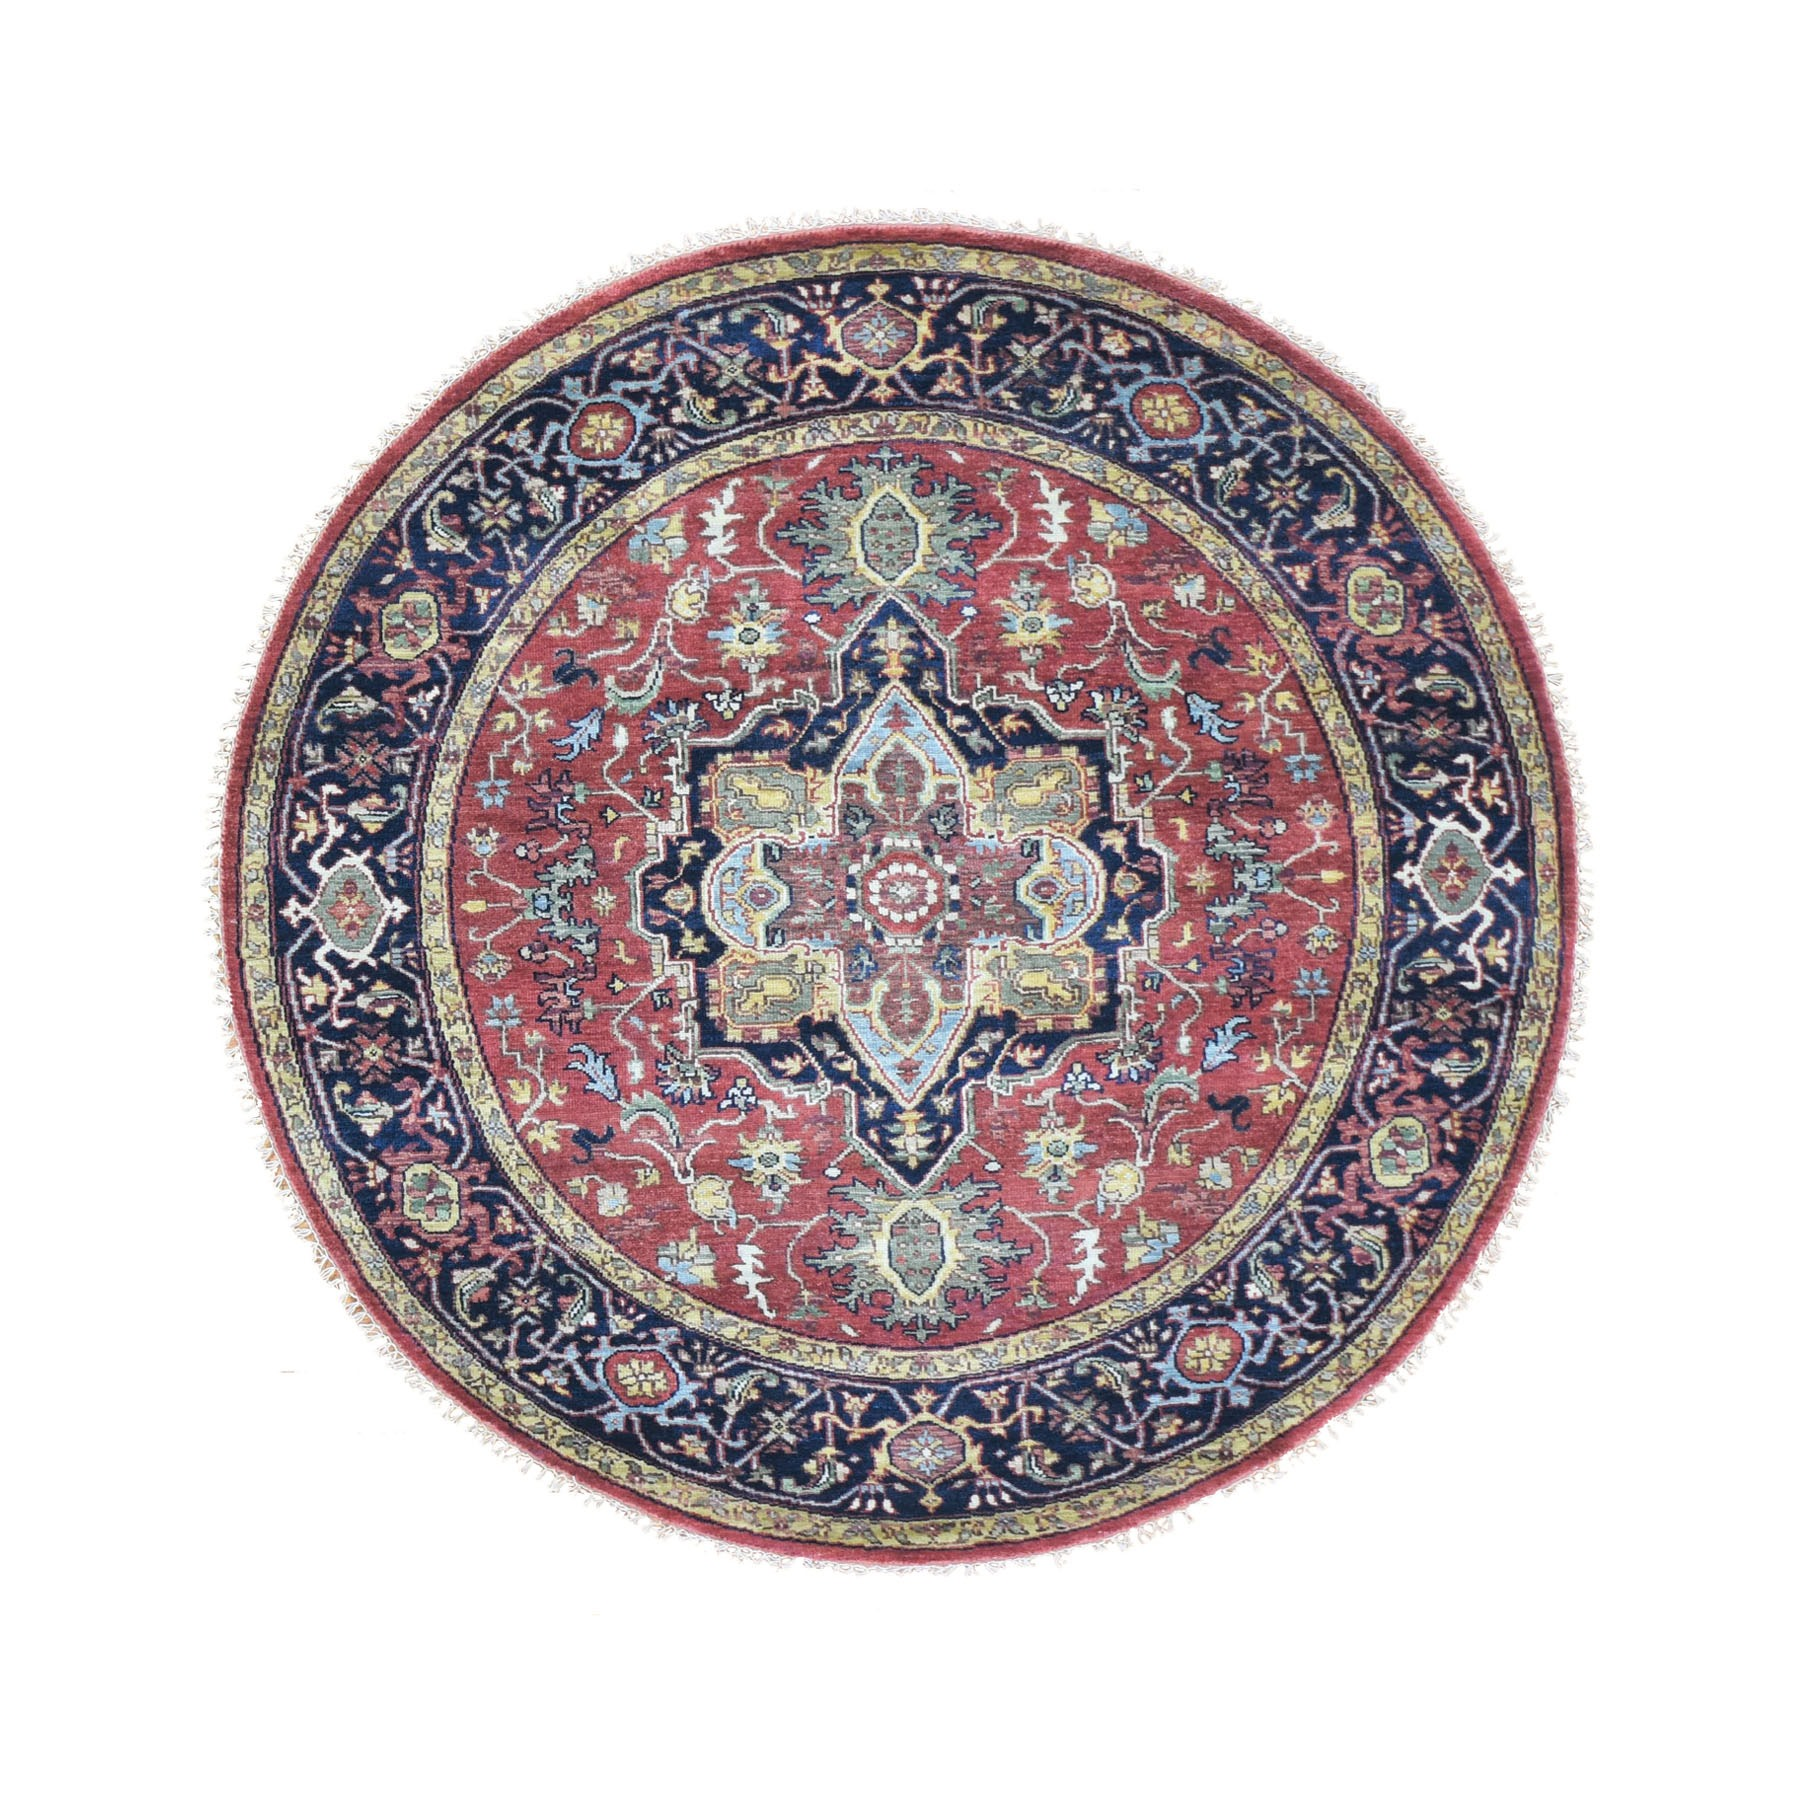 6'x6' Round Red Heriz Revival Pure Wool Hand Woven Oriental Rug